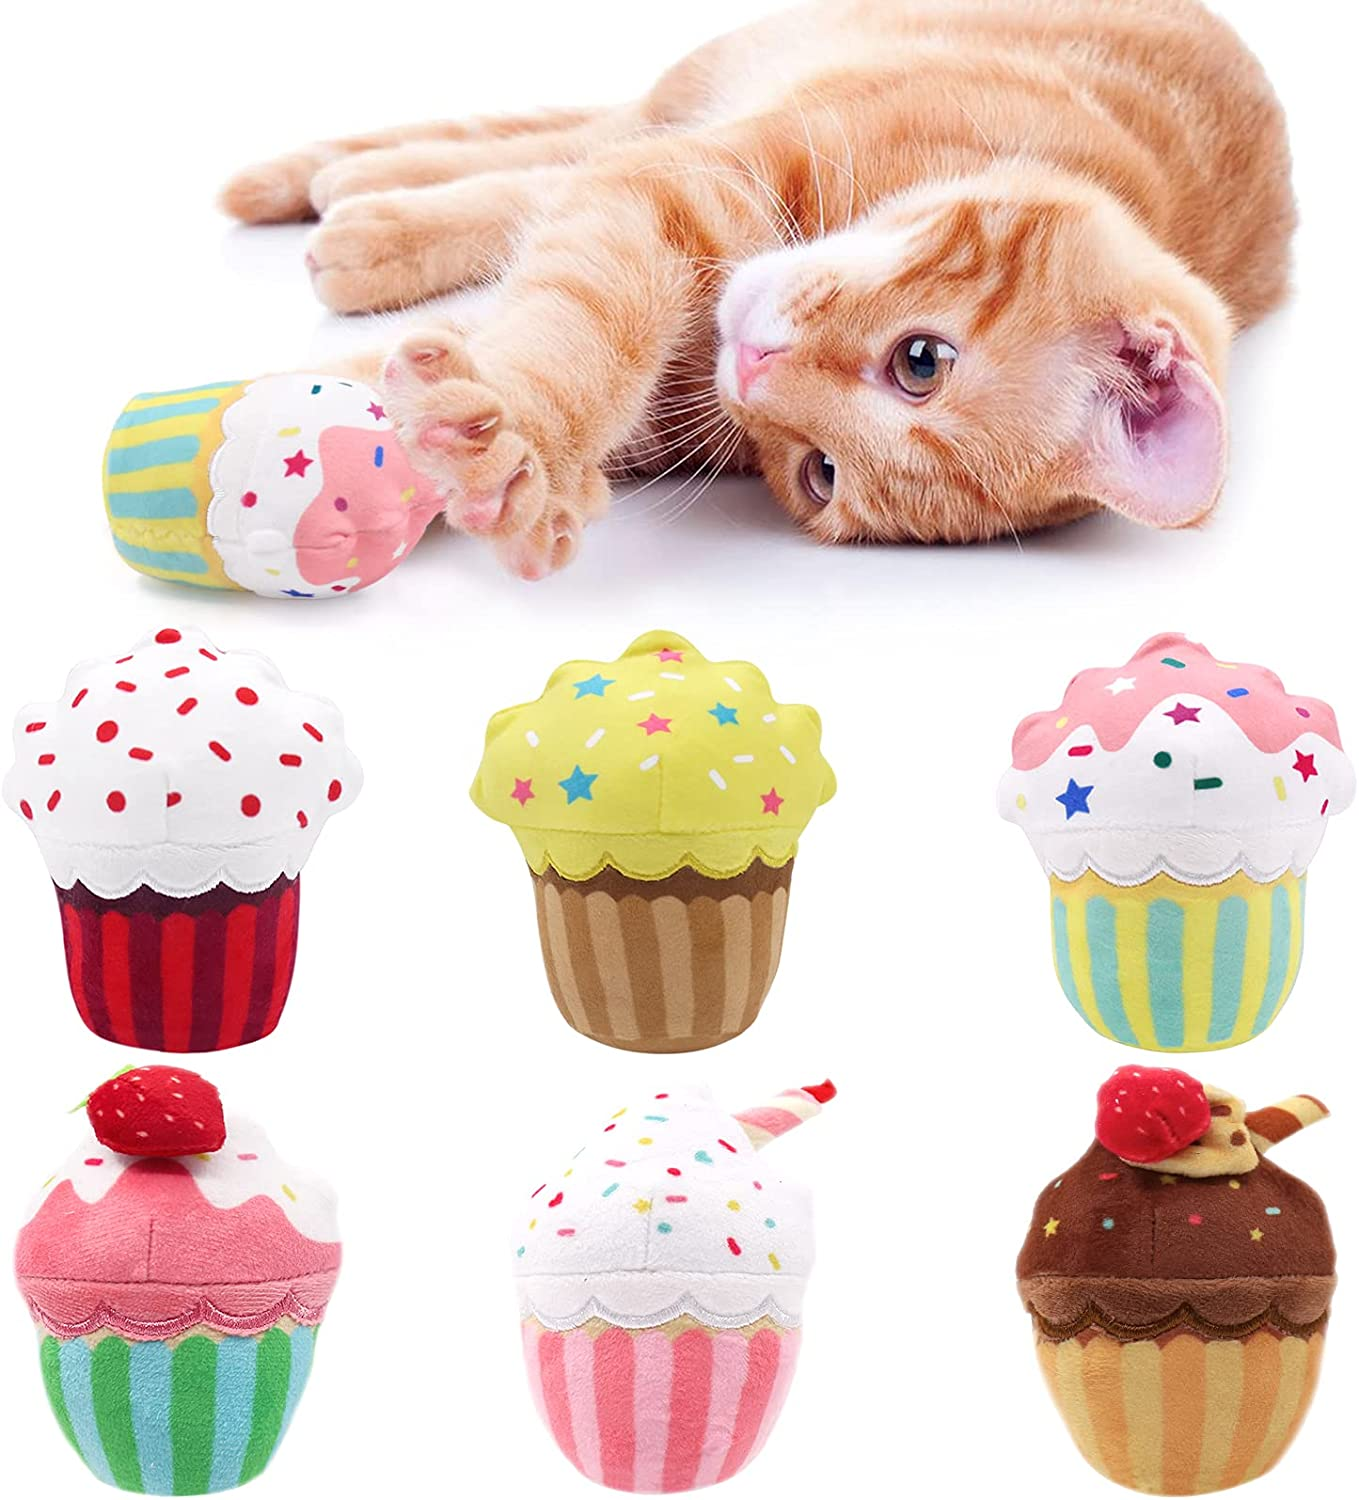 Limited Special Price 1 year warranty CiyvoLyeen 6 PCS Cupcake Catnip Cat Kitte Cute Toys